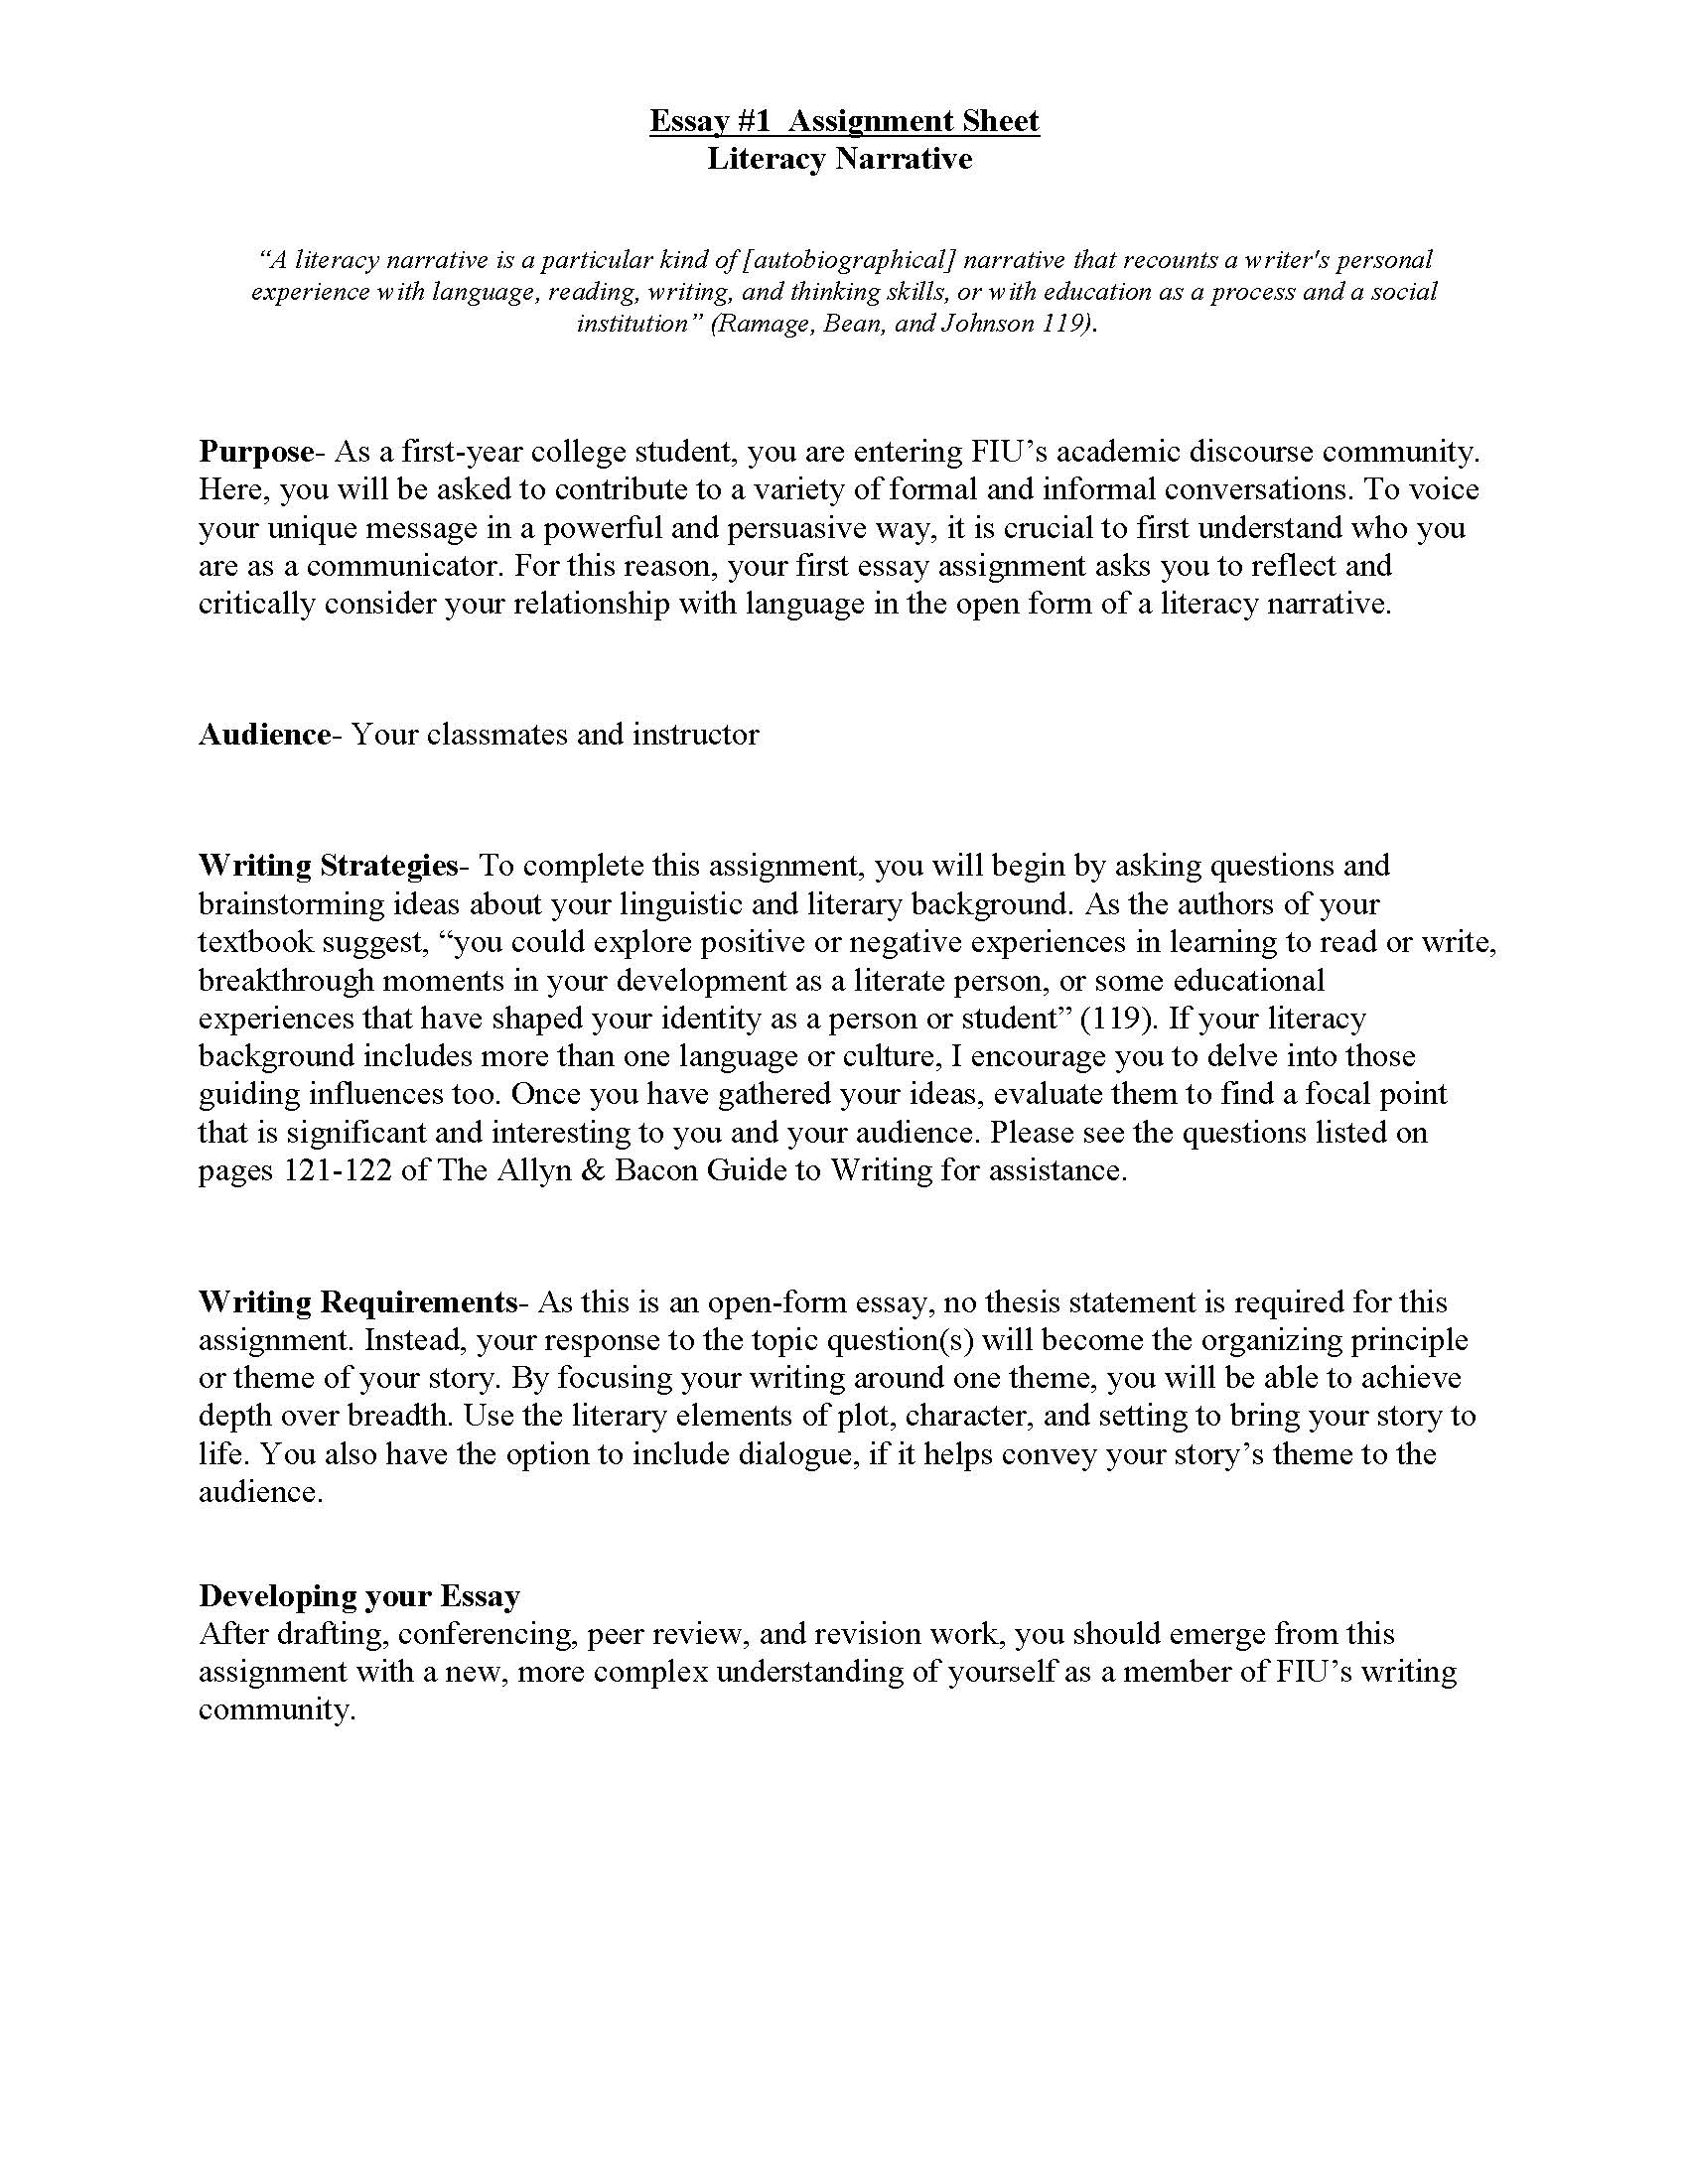 015 Research Paper Literacy Narrative Unit Assignment Spring 2012 Page 1 Human Trafficking Remarkable Example Full